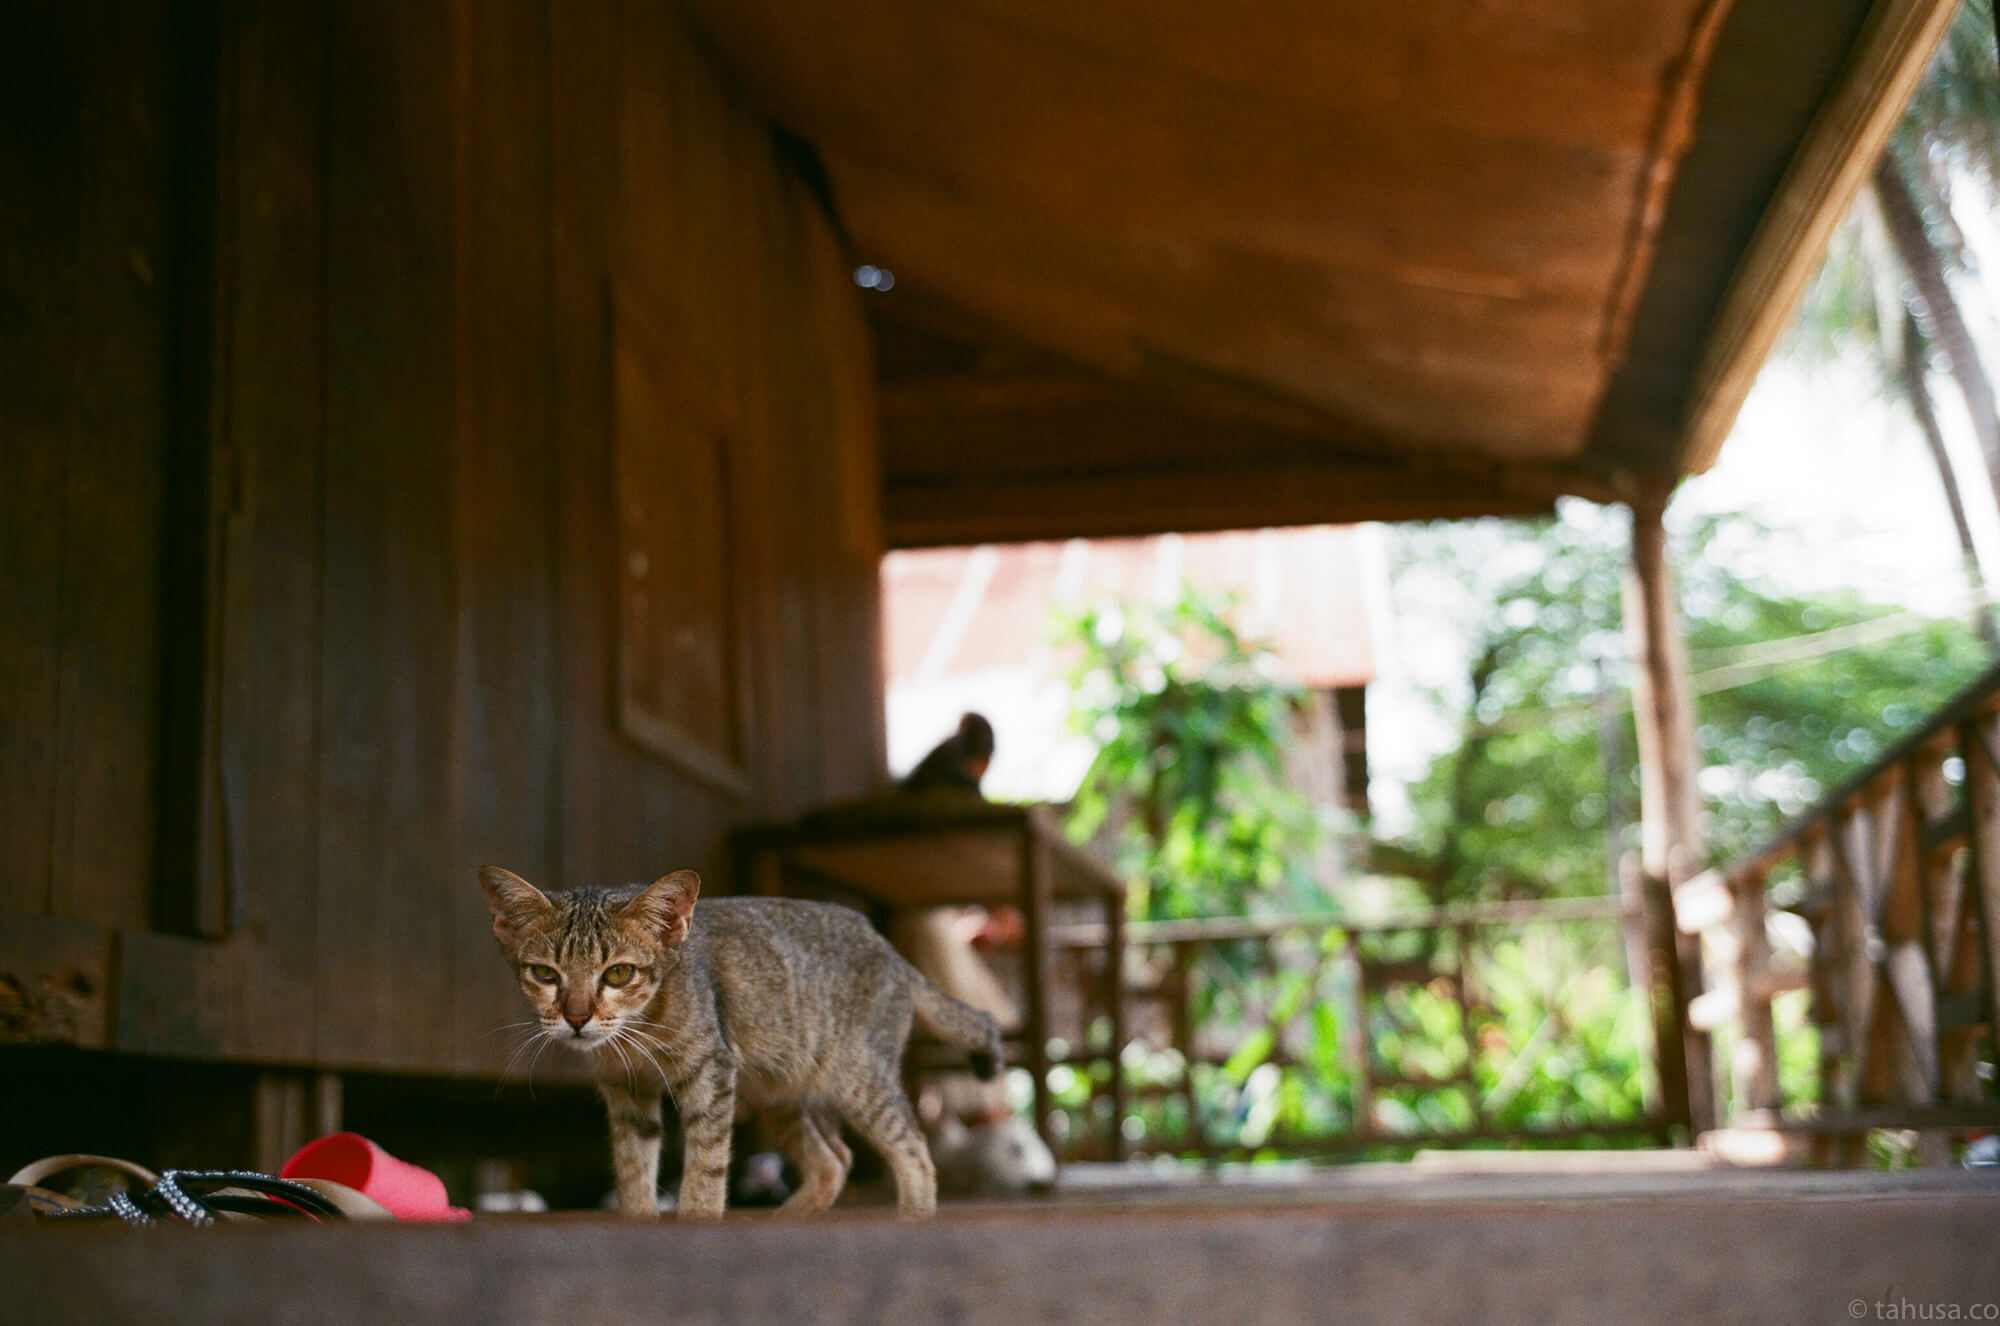 baby-cat-in-one-of-the-family-cambodia-angkor-siem-reap-south-east-asia-travel-travelling-street-snap-using-leica-m2-summicron-35mm-f2-v1-8elements-analog-film-is-fuji-fujifilm-superia-premium-400-iso400